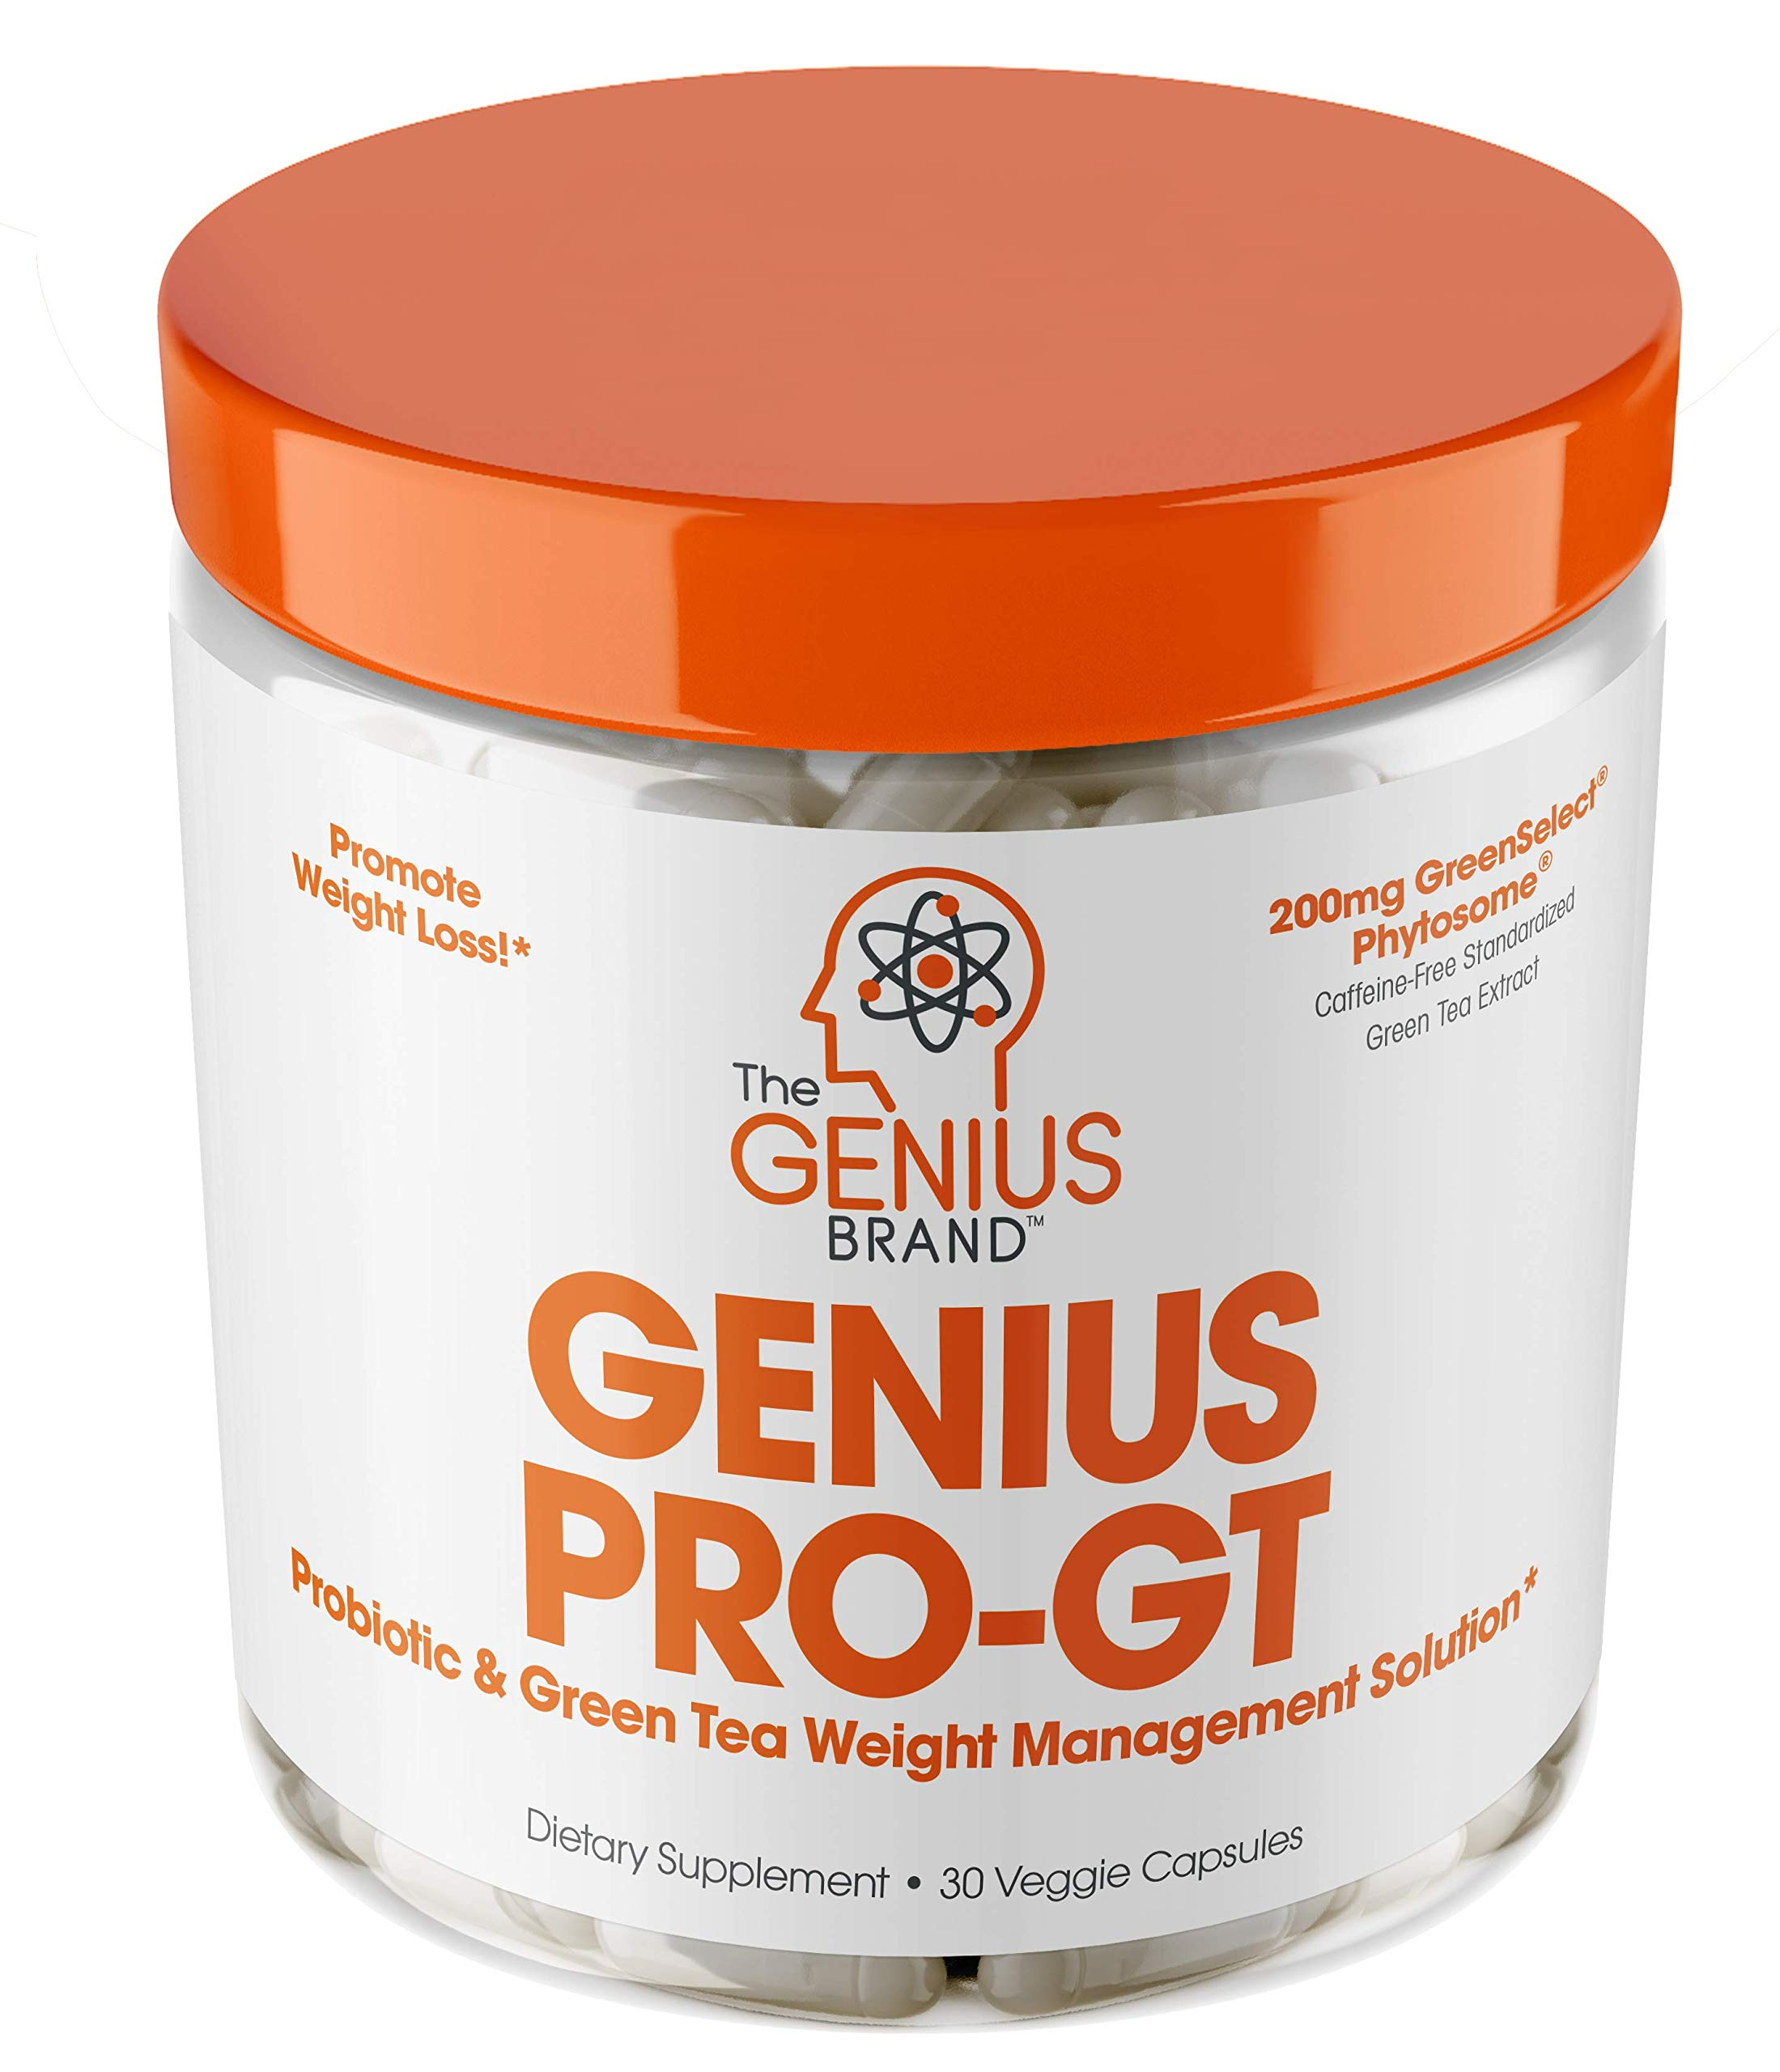 Genius Probiotics for Weight Loss w/ Green Tea Extract for Women & Men - Shelf Stable Probiotic Natural EGCG Fat Burner Supplement, Digestive Health Pills for Bloating Relief and Belly Reduction -30sv by The Genius Brand